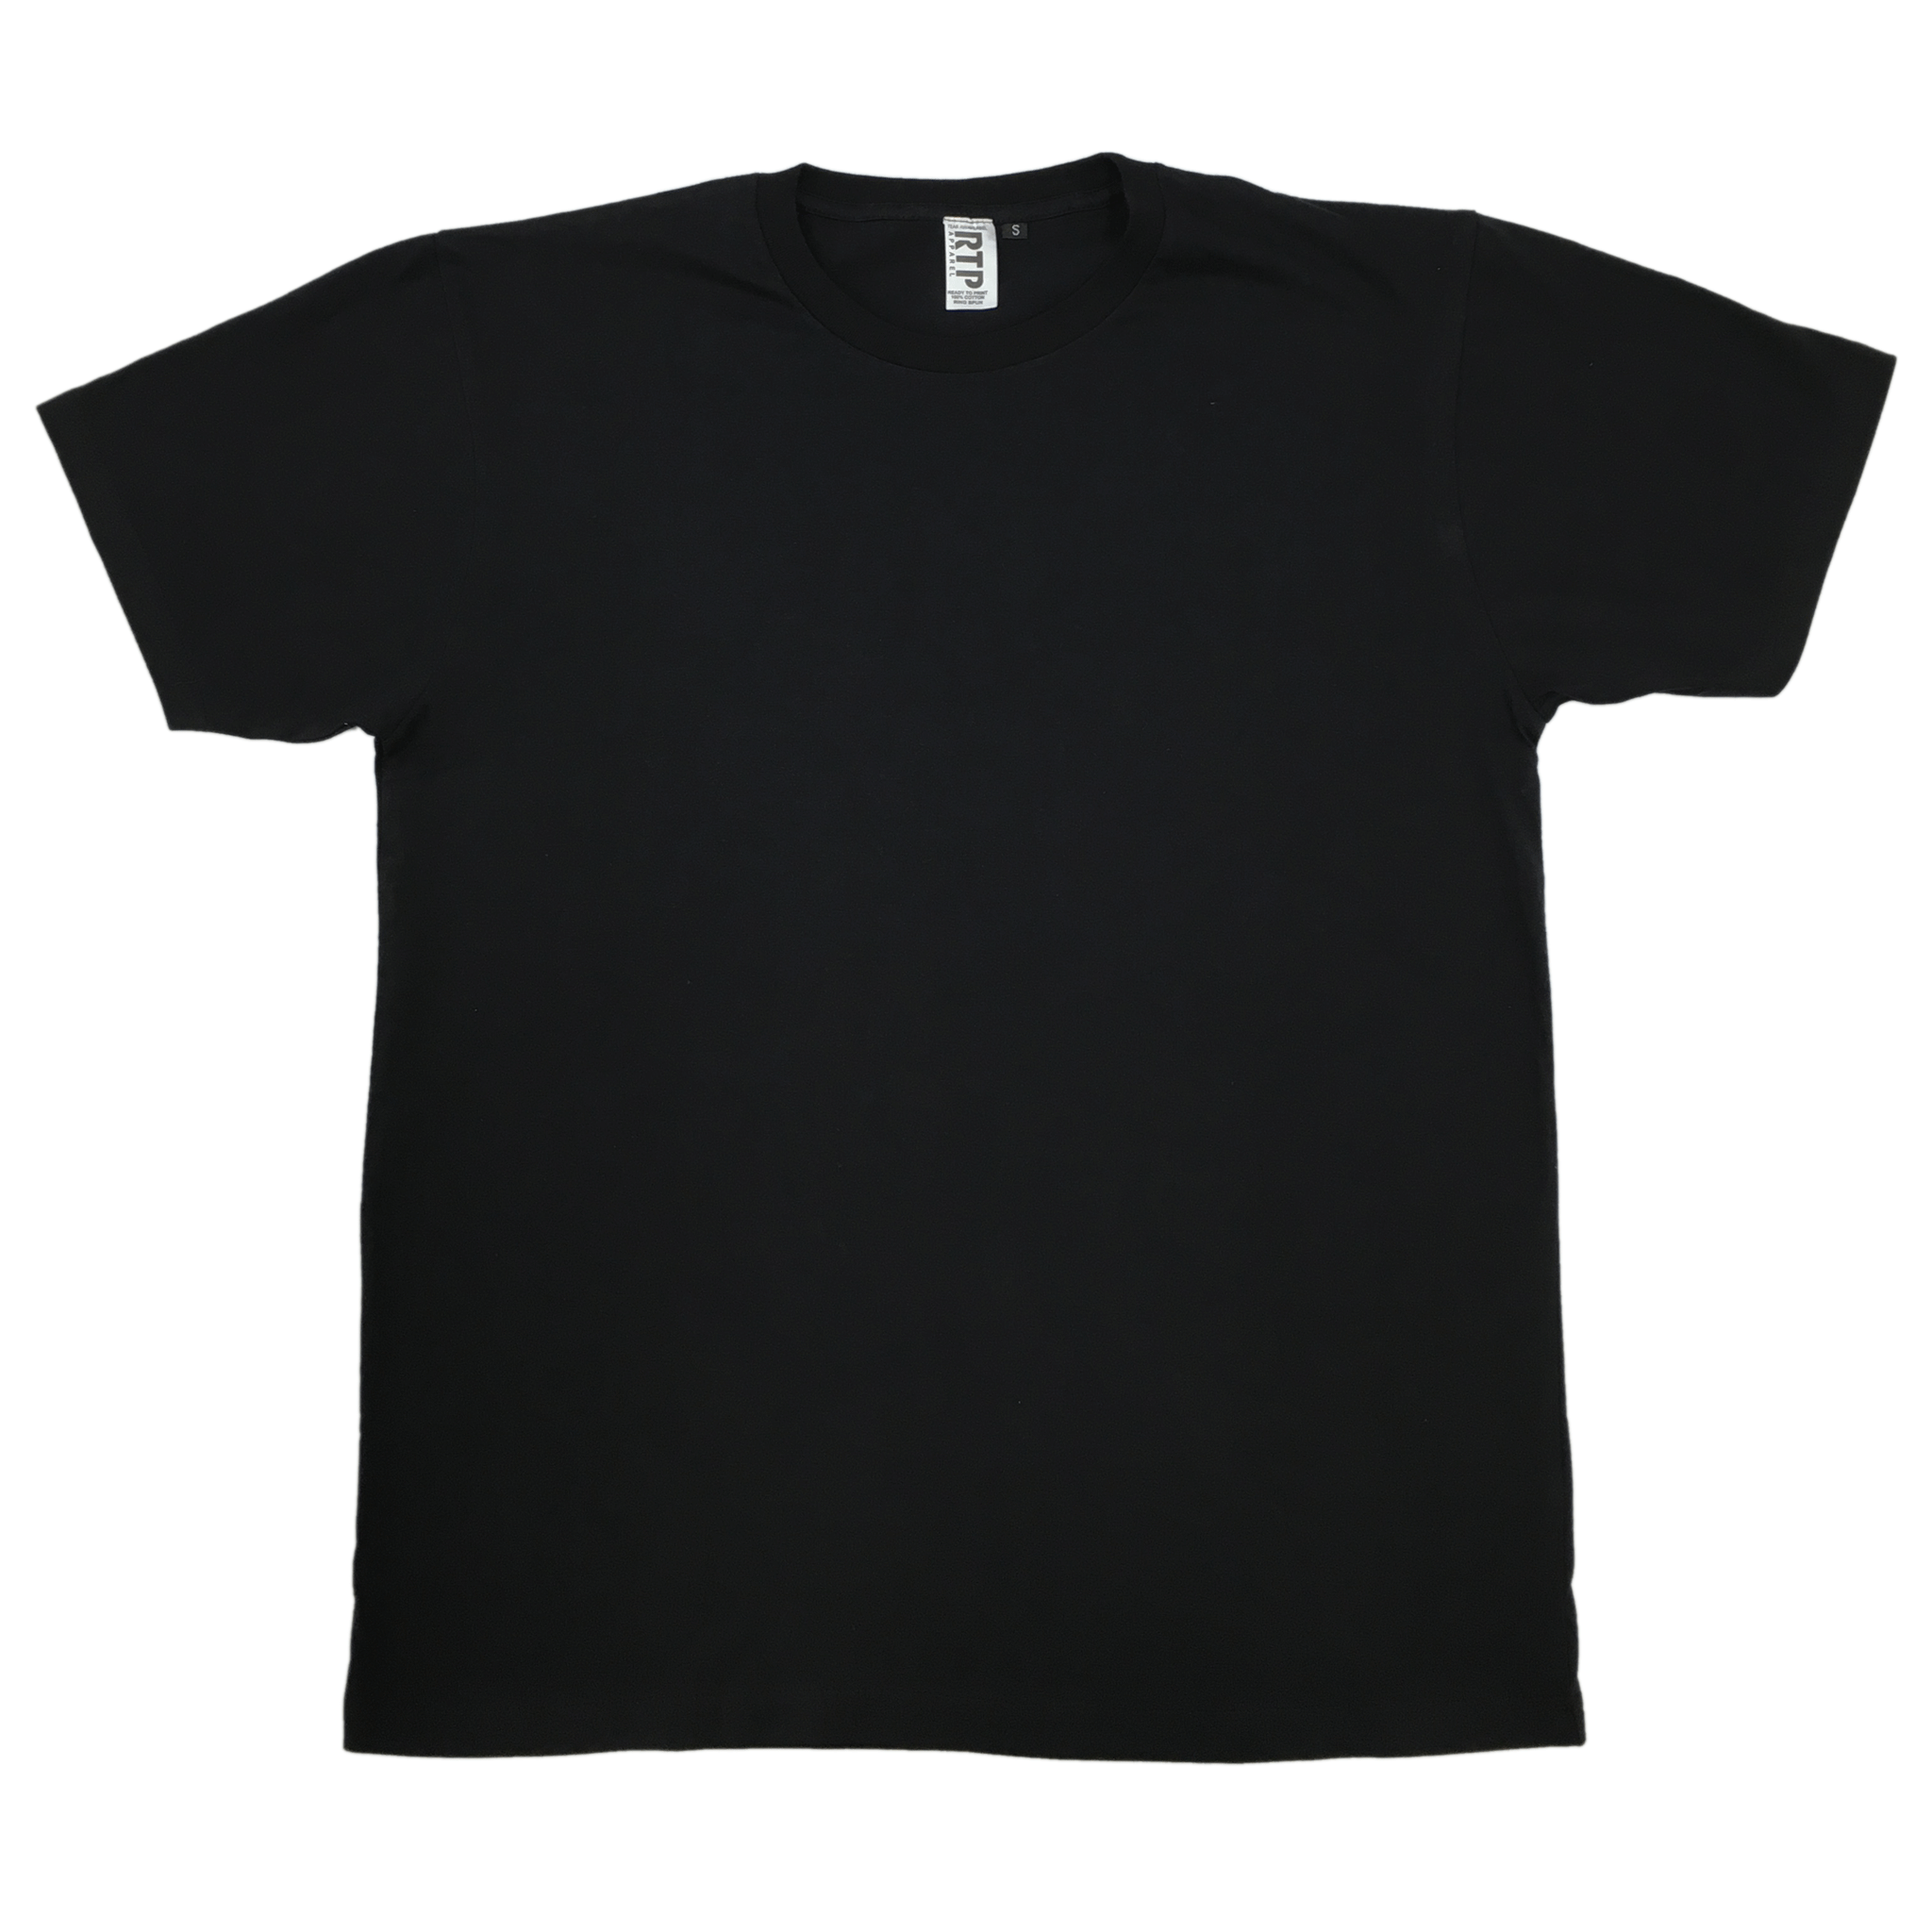 Style 1600 - BLACK - DTG Ready To Print Crew Neck T-Shirt